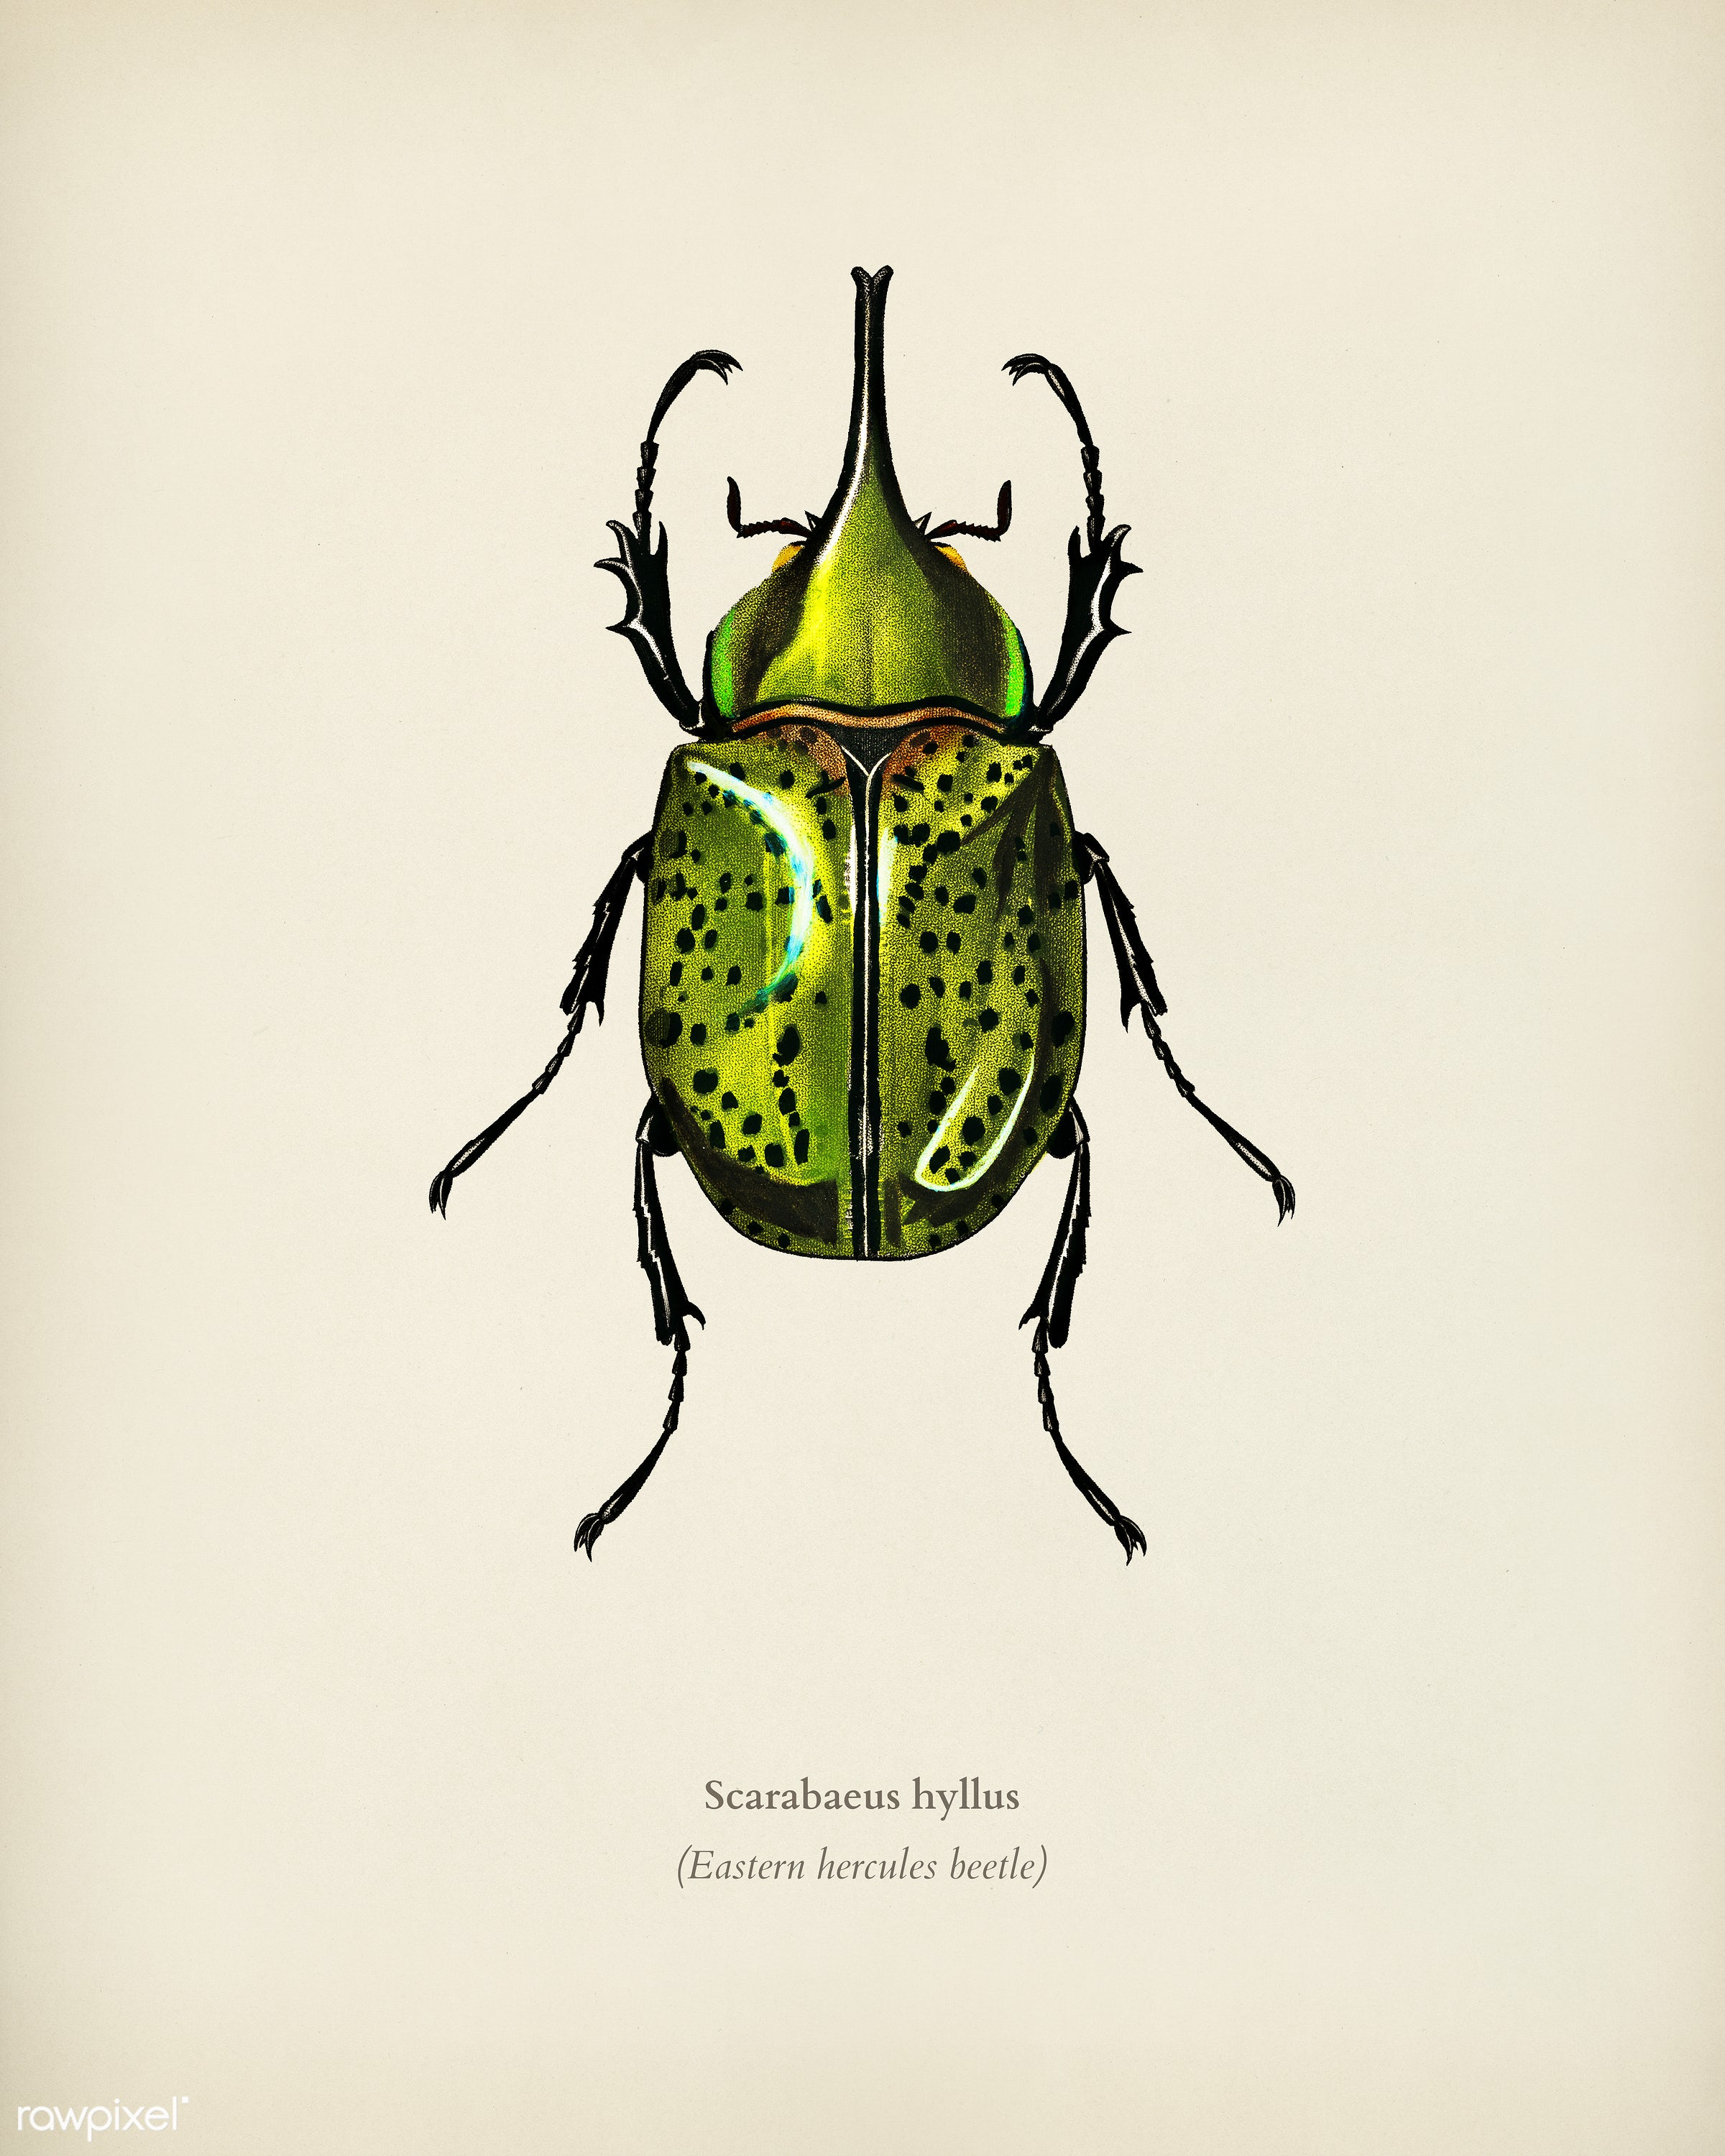 Eastern Hecules Beetle (Scarabaeus Hyllus) illustrated by Charles Dessalines D' Orbigny (1806-1876). Digitally enhanced...